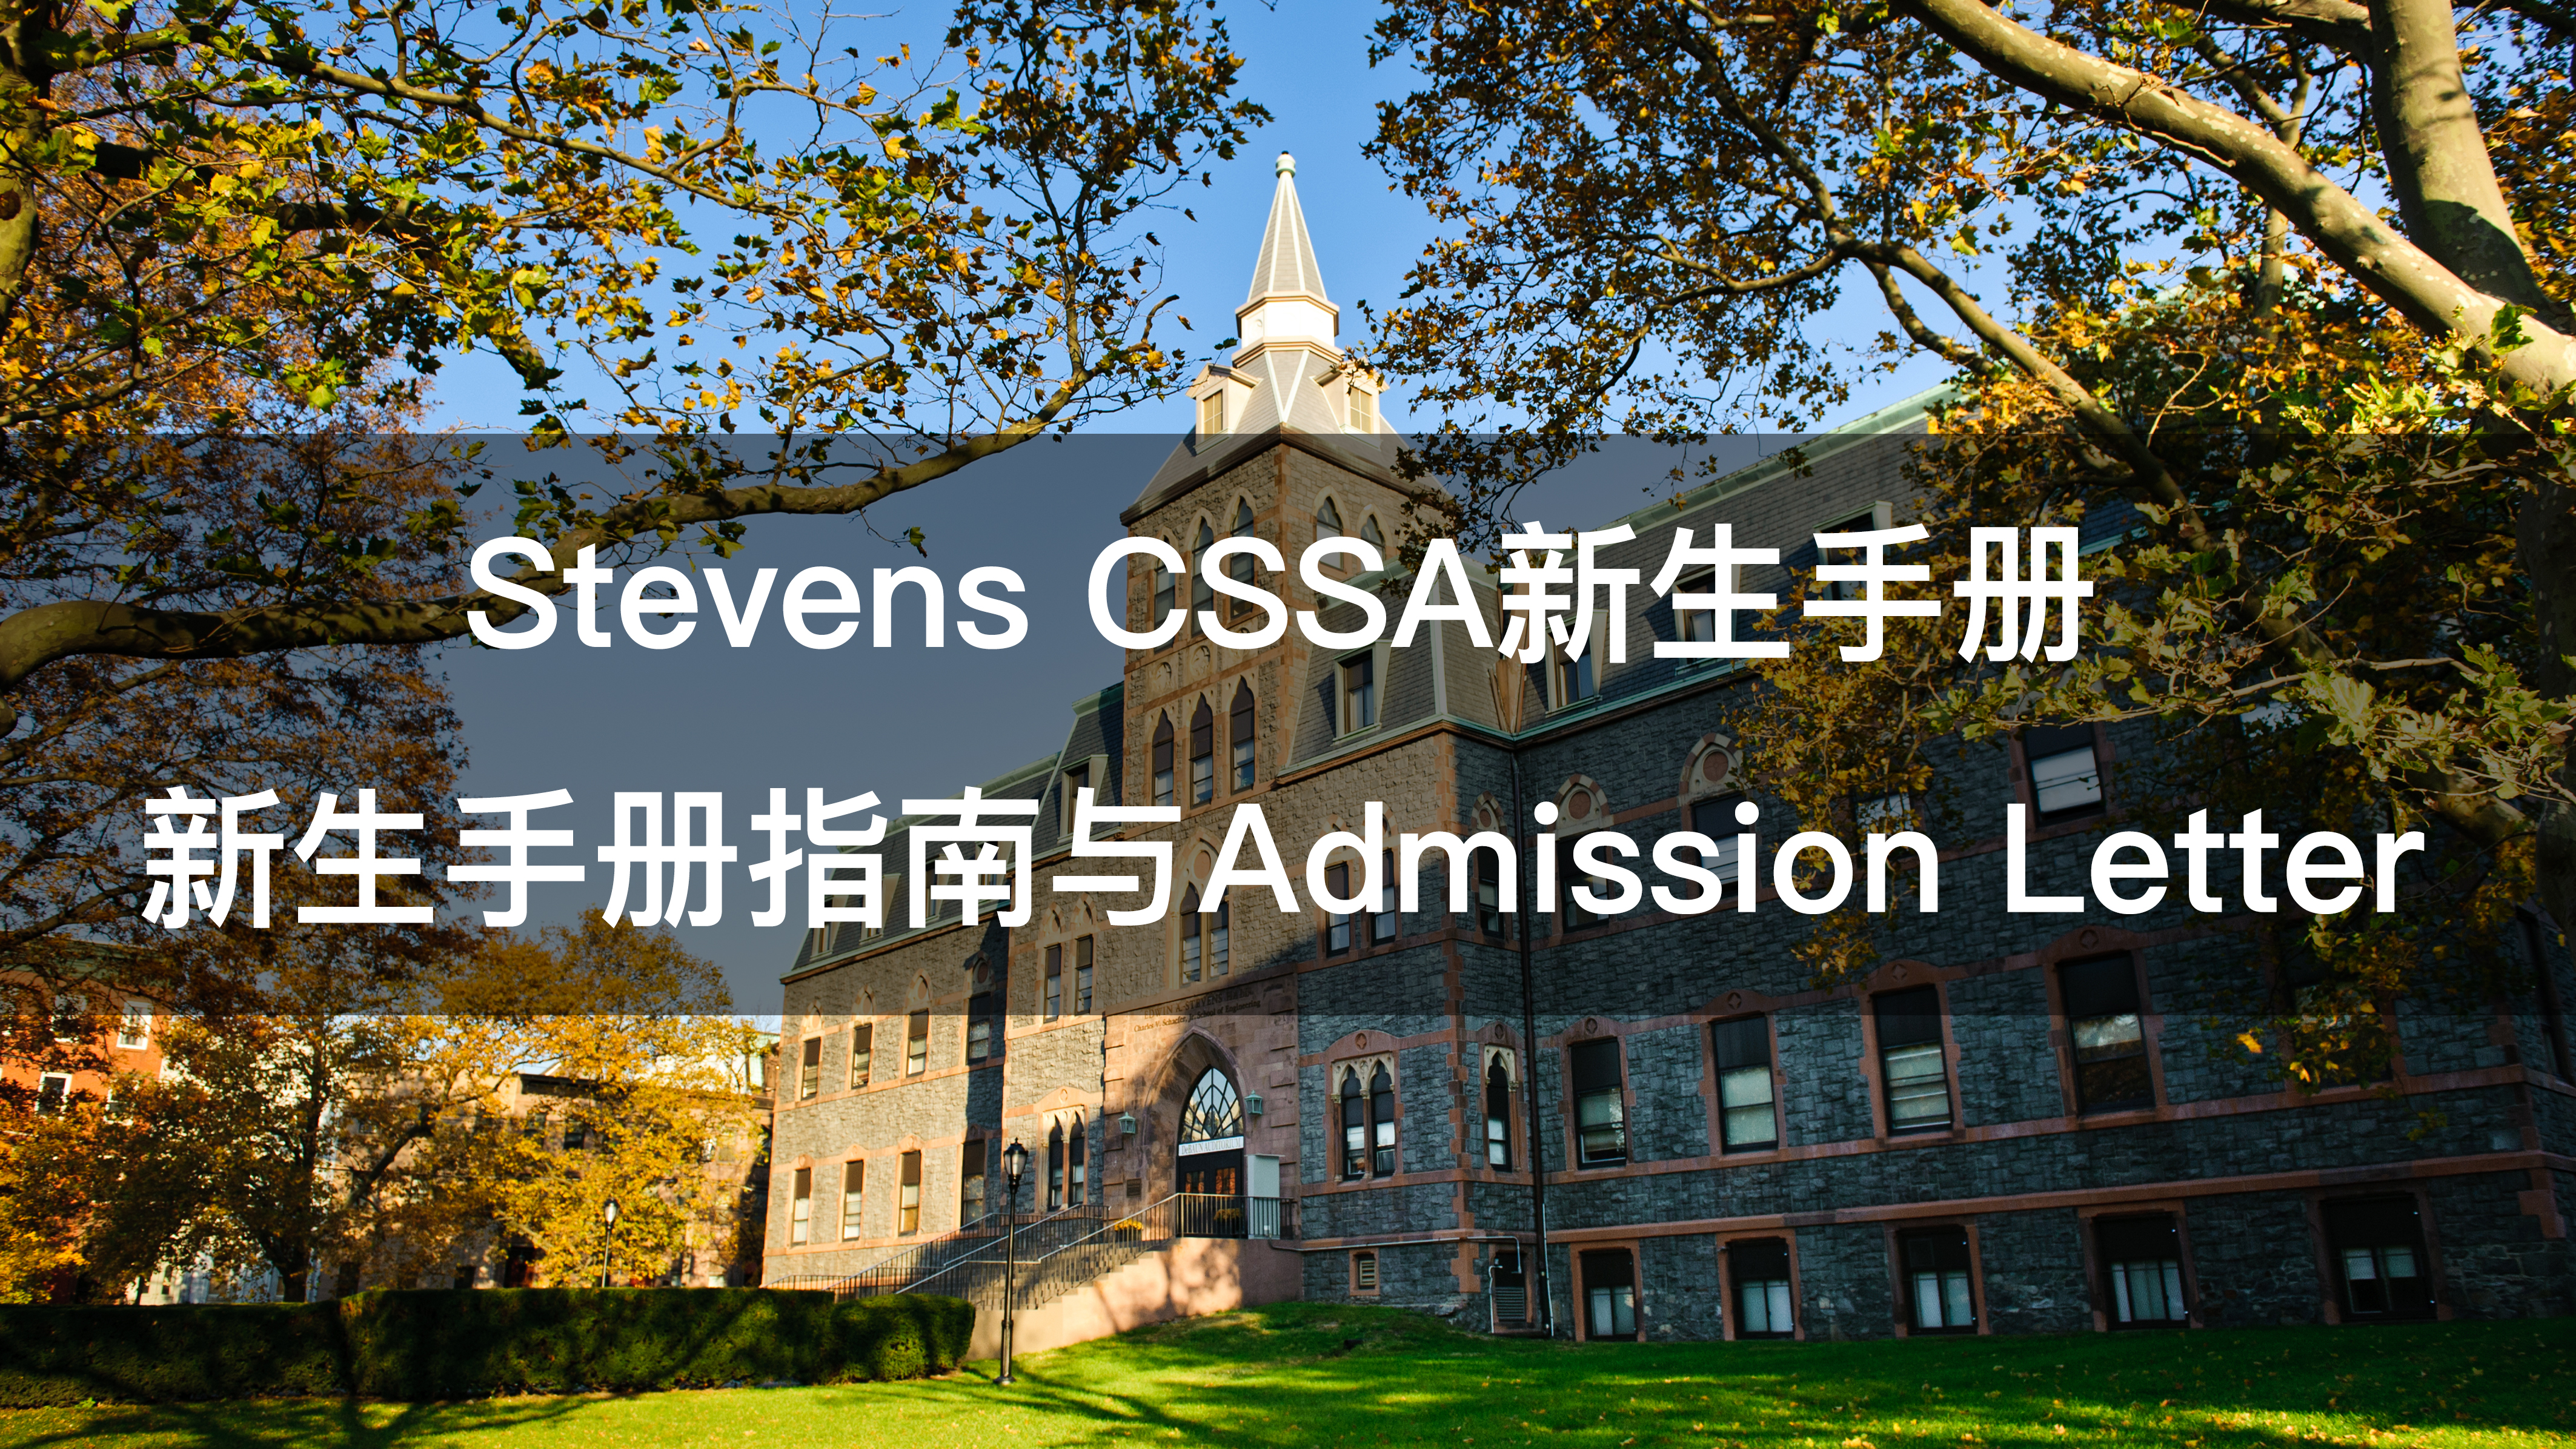 【SIT新生资讯准备篇一】新生手册指南与Admission Letter录取信